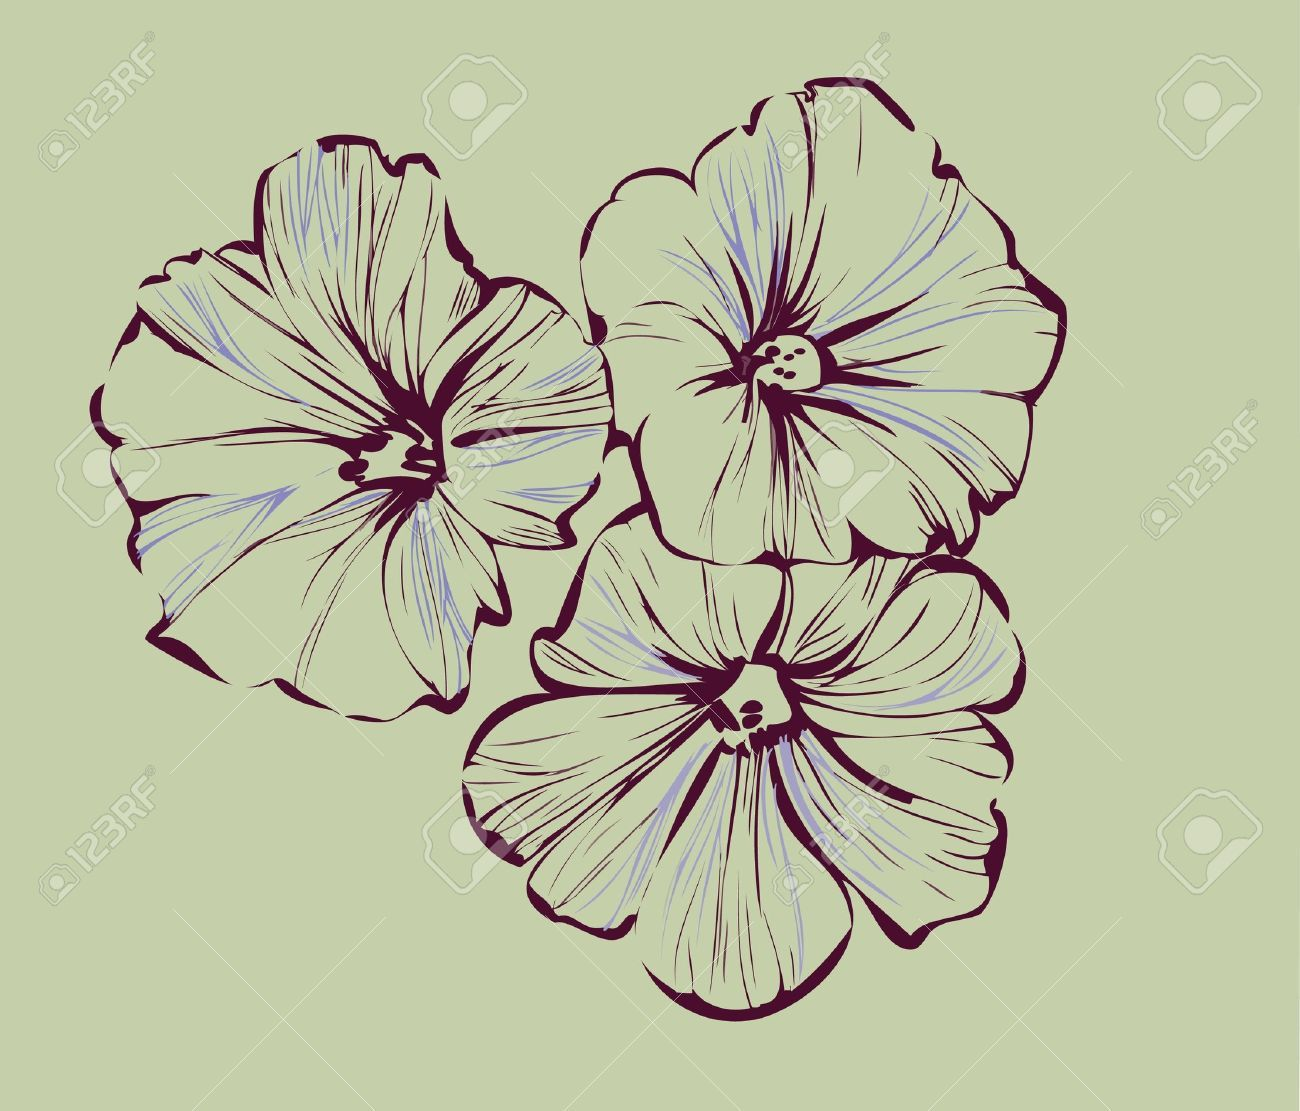 Morning Glory Stock Vector Illustration And Royalty Free Morning Glory Clipart Morning Glory Tattoo Birth Flower Tattoos Aster Tattoo